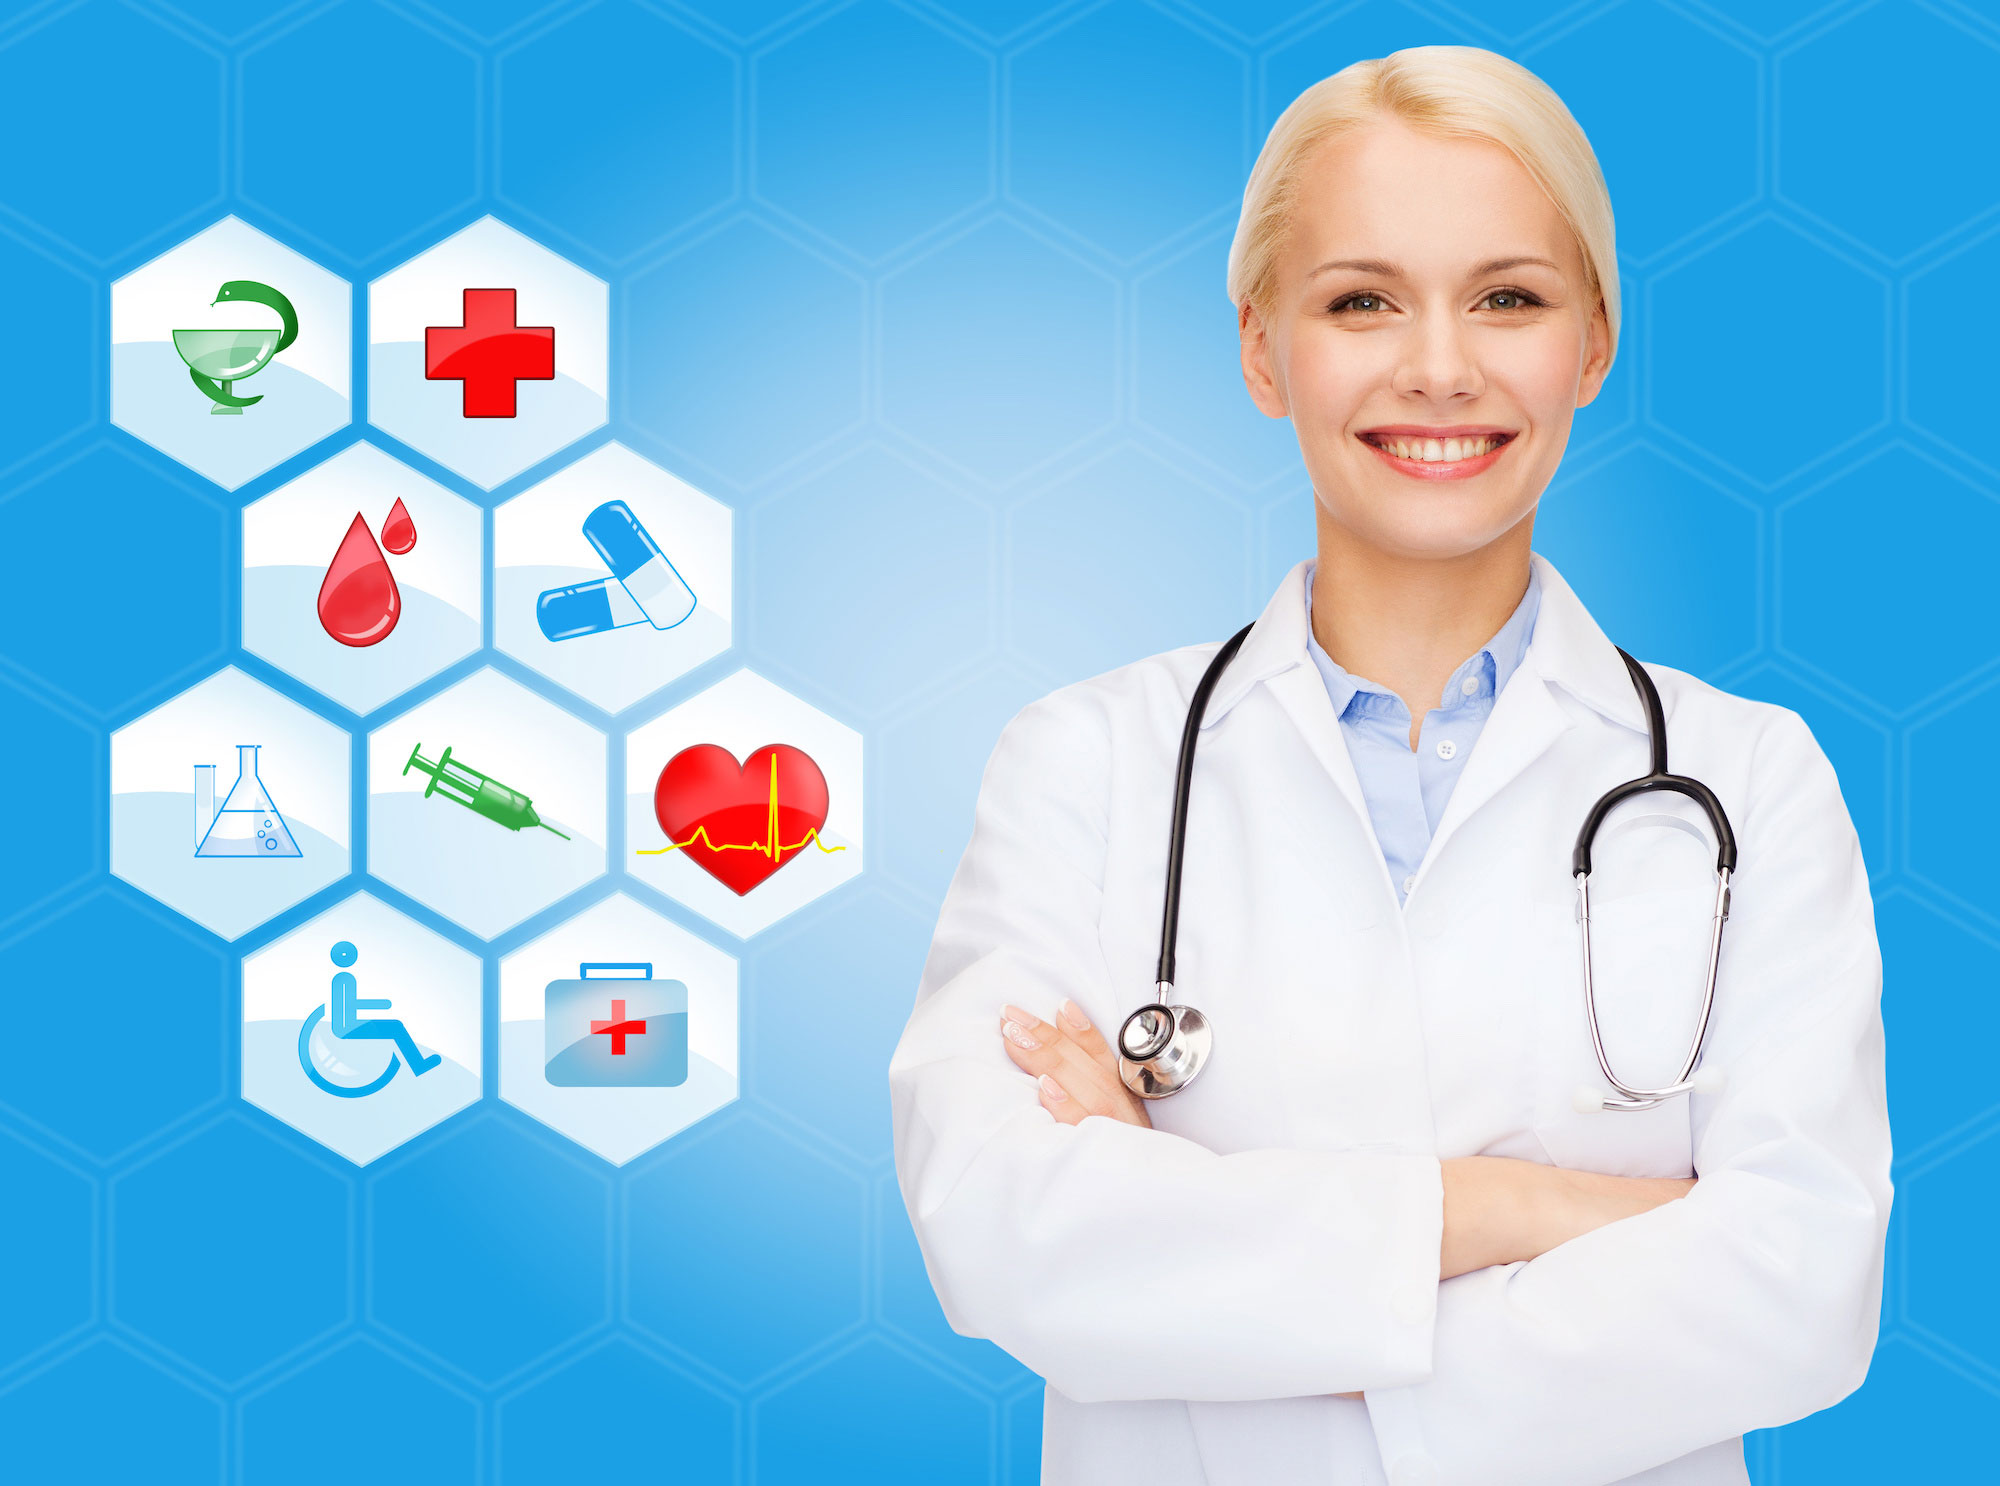 A nurse can provide vaccines upon request